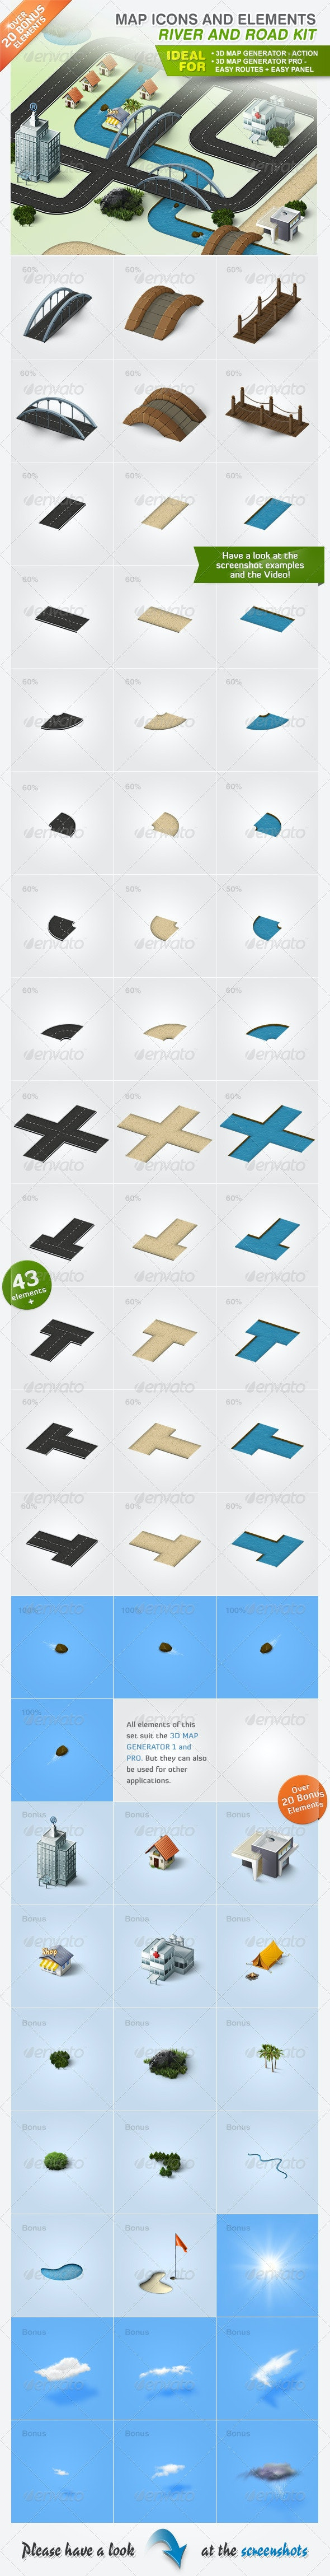 Map Icons and Elements - River and Road Kit - Objects Icons